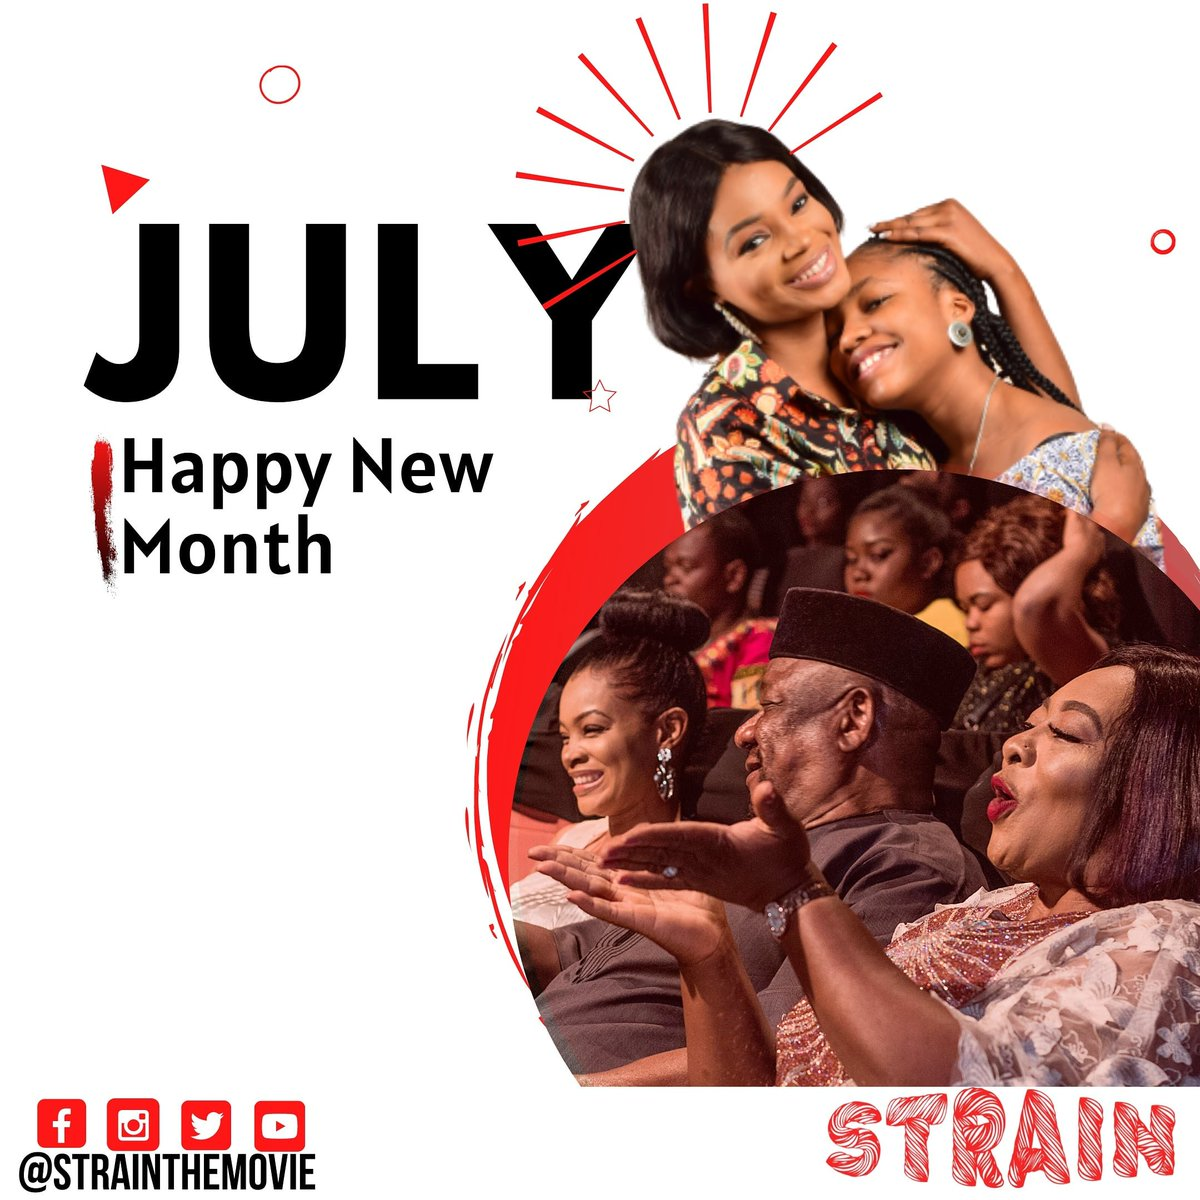 It's a new month!!  We reap all the good July has to offer.  Stay positive and remember to stay safe! .. .. . #July1st #july #newmonth #happynewmonth #nigerianmovies #sicklecell #sicklecelldisease #netflixnaija #happytime #family #familytime #familyfirst #strainthemoviepic.twitter.com/aZcmZ3c0mq